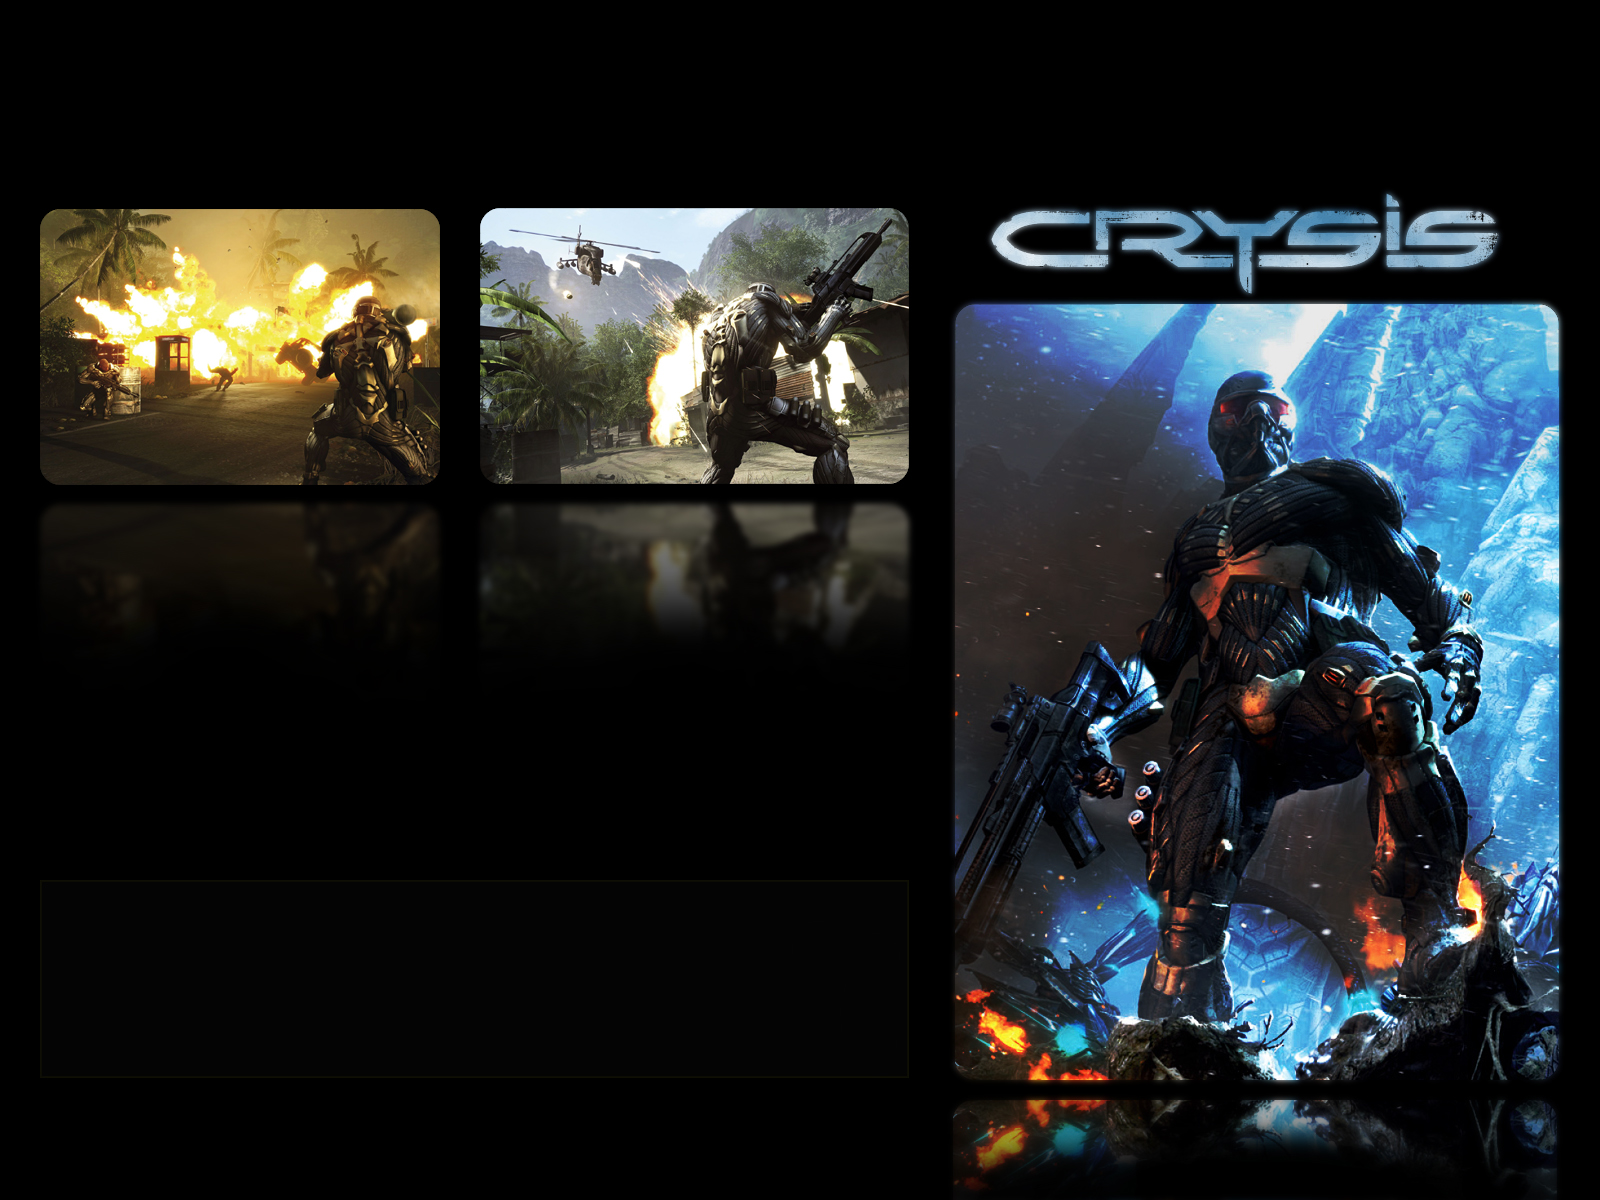 wallpapers - Crysis 1600x1200 1024x768 800x600